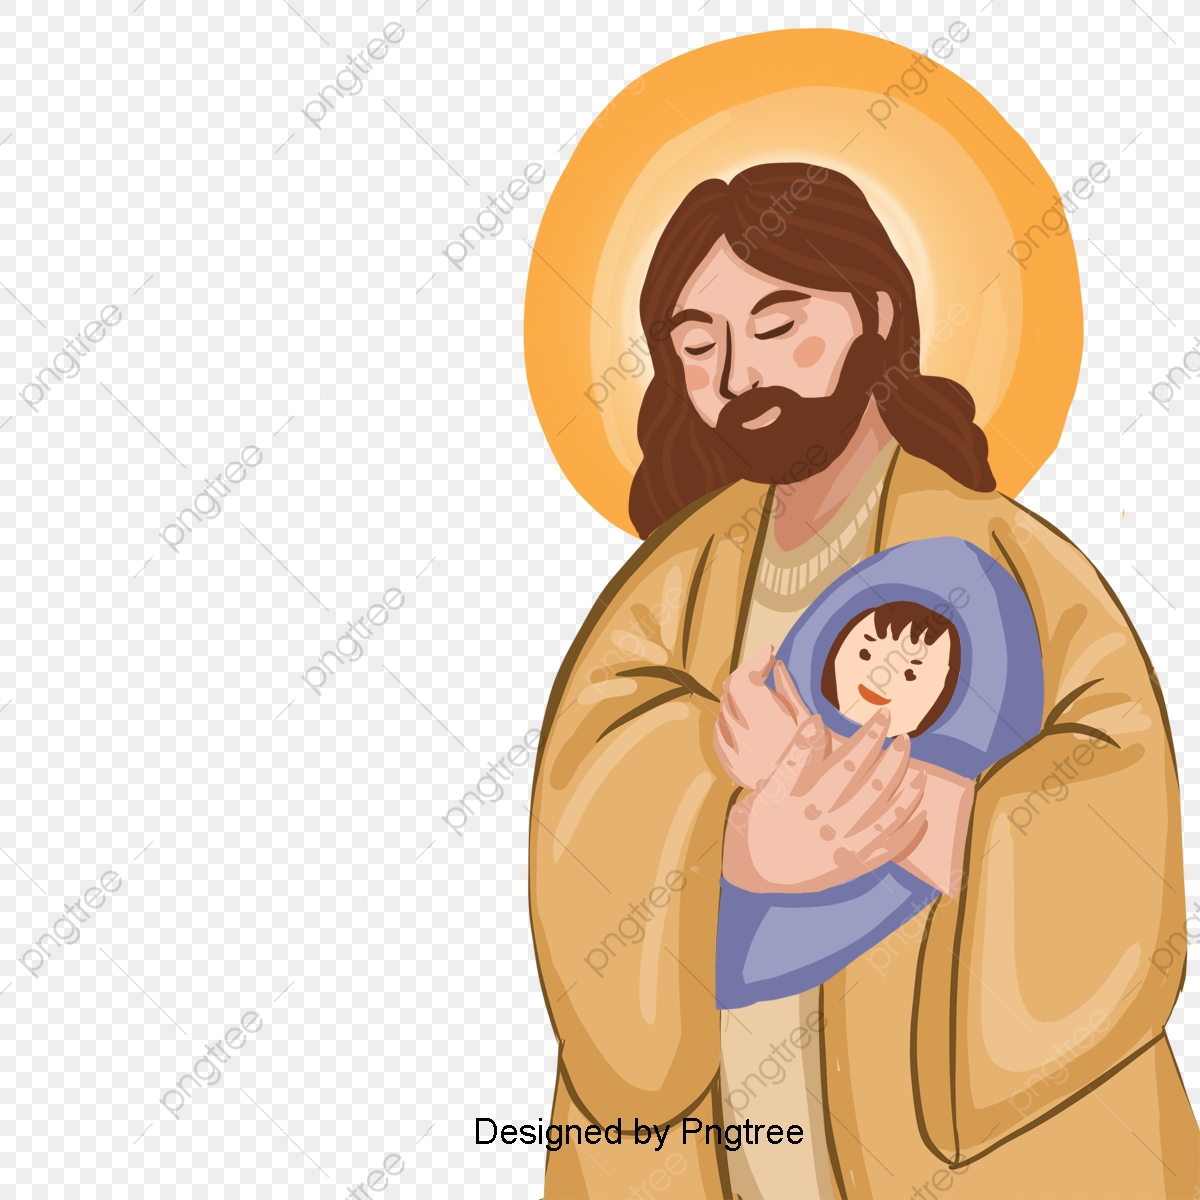 hight resolution of commercial use resource upgrade to premium plan and get license authorization upgradenow jesus christian child